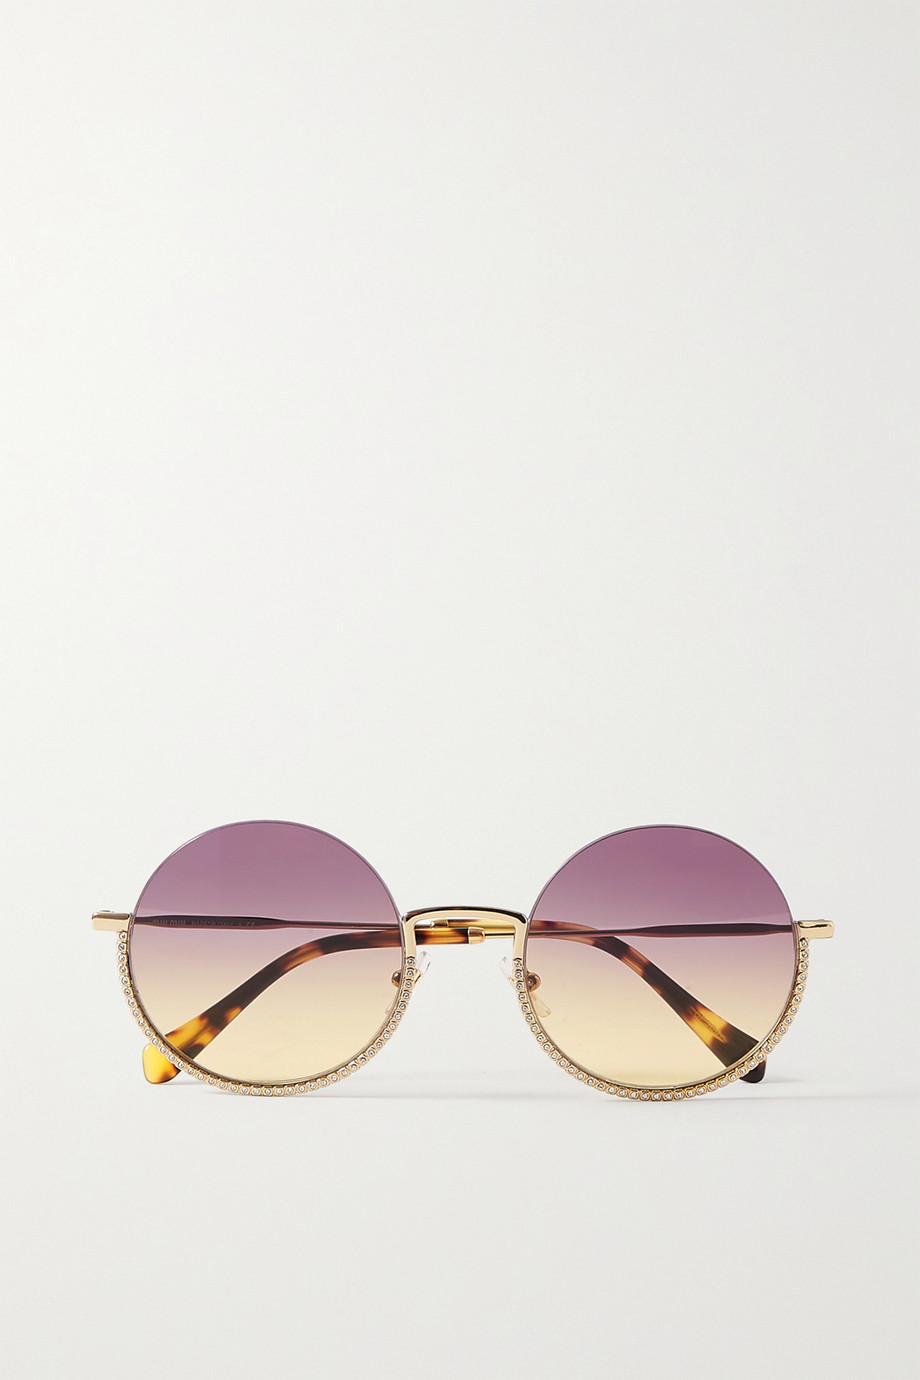 Miu Miu Eyewear Round-frame crystal-embellished gold-tone and tortoiseshell acetate sunglasses